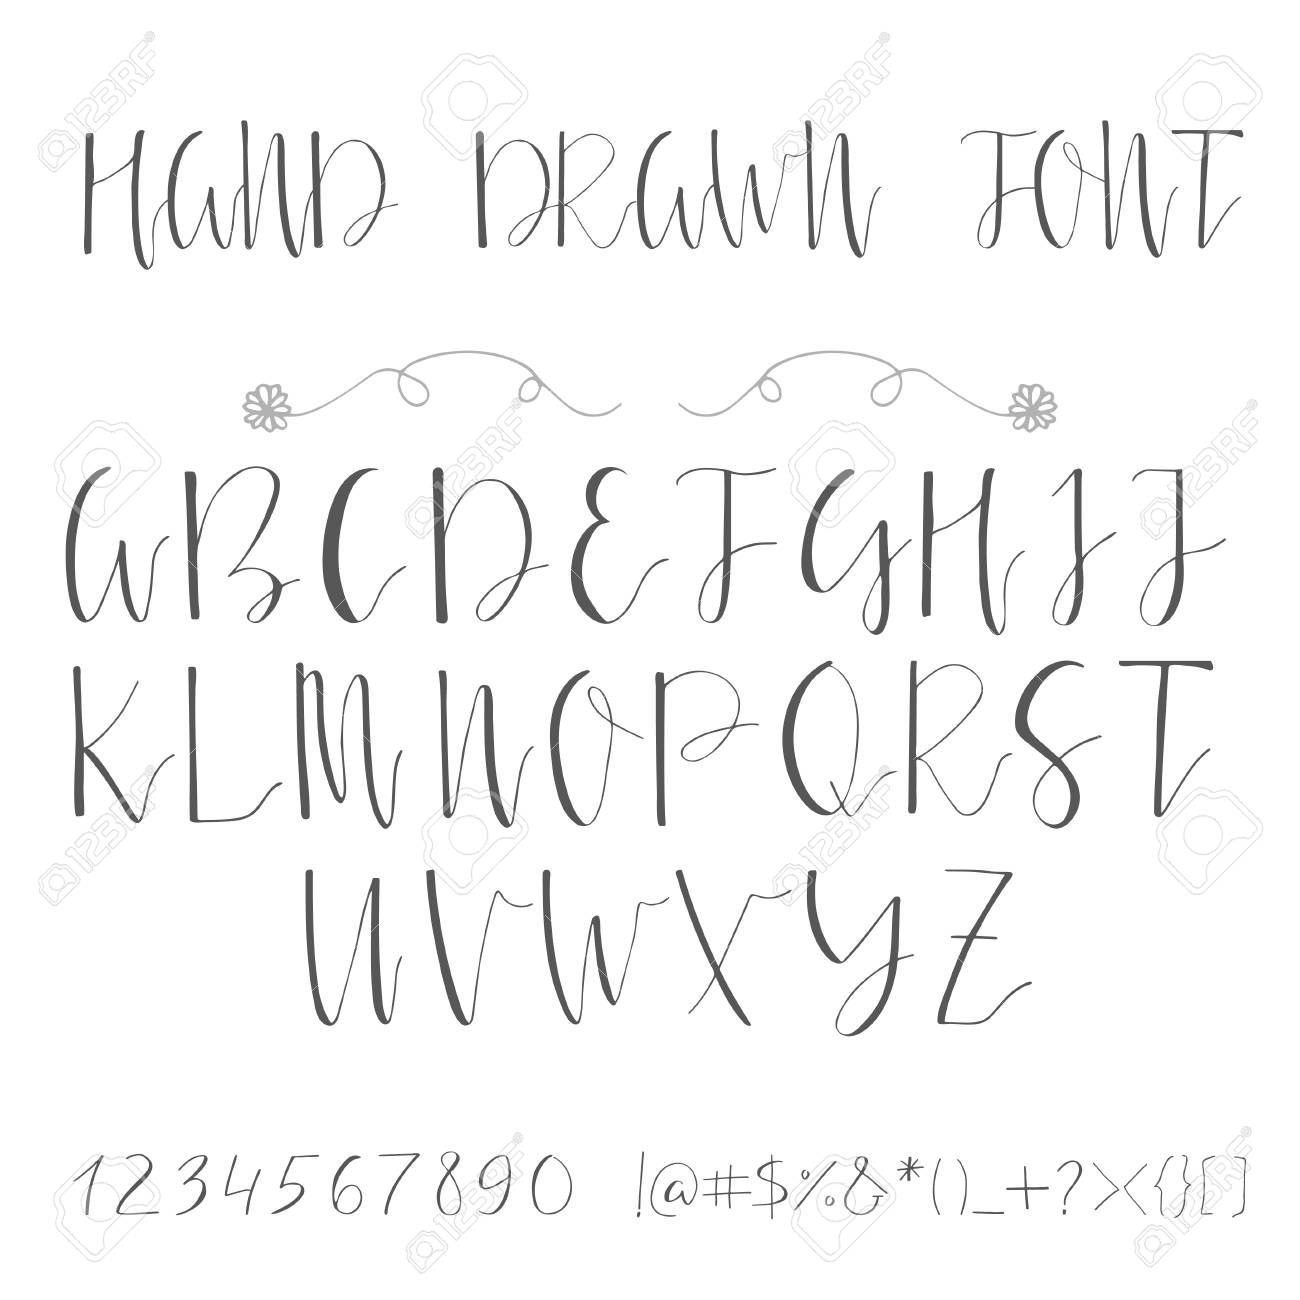 Handwritten calligraphy font  Made with ink  Modern calligraphy